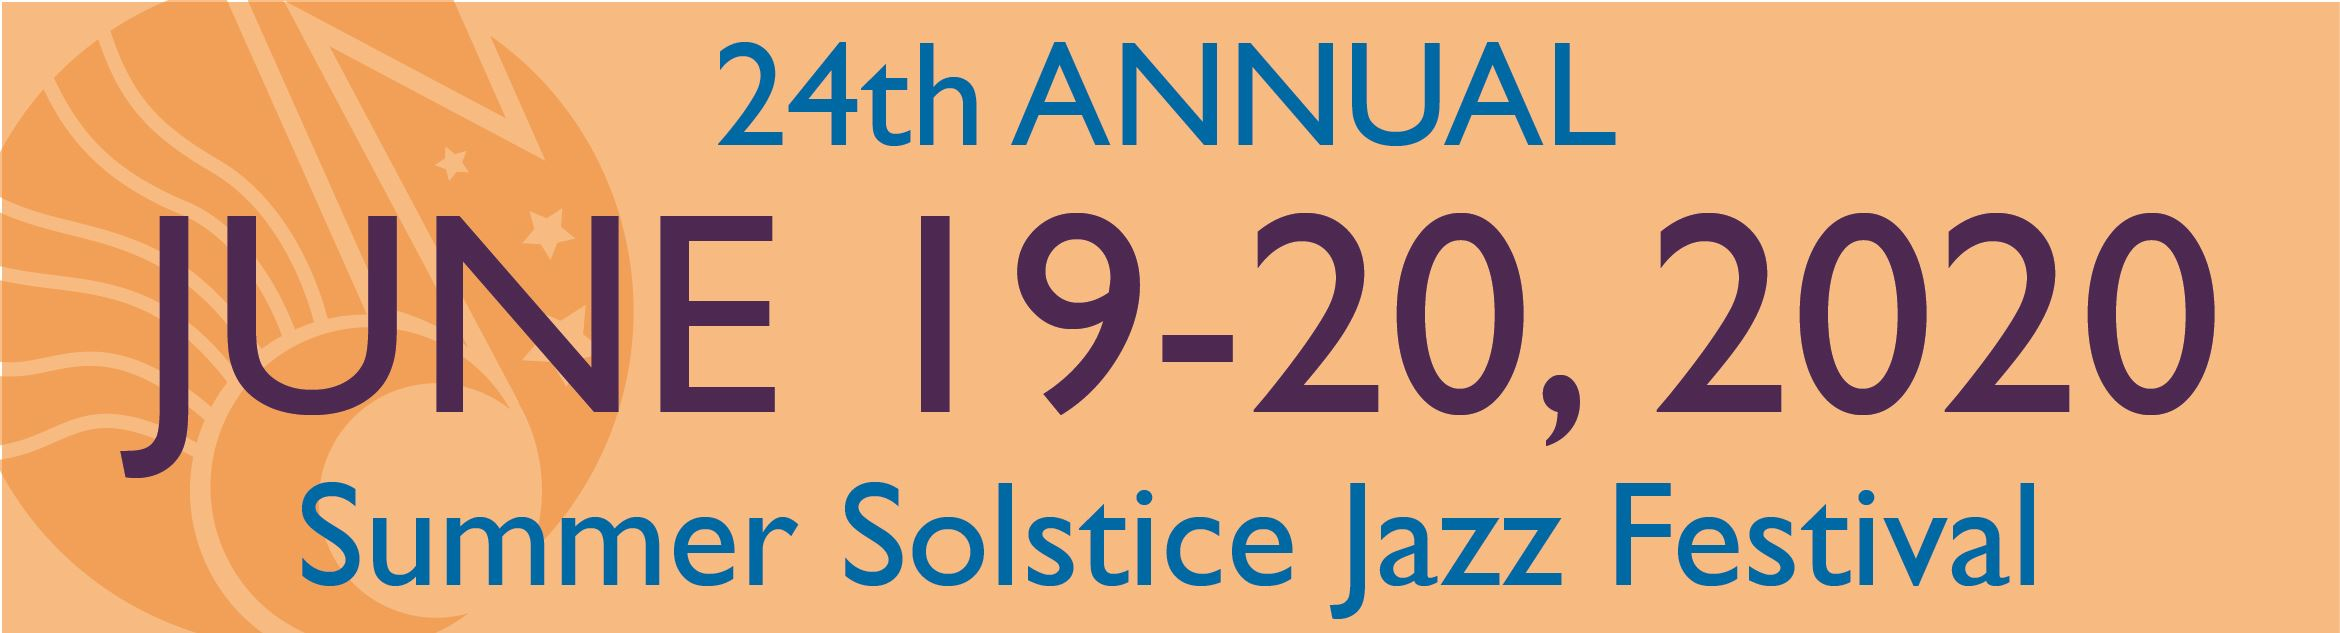 24th annual Summer Solstice Jazz Festival June 19-20, 2020